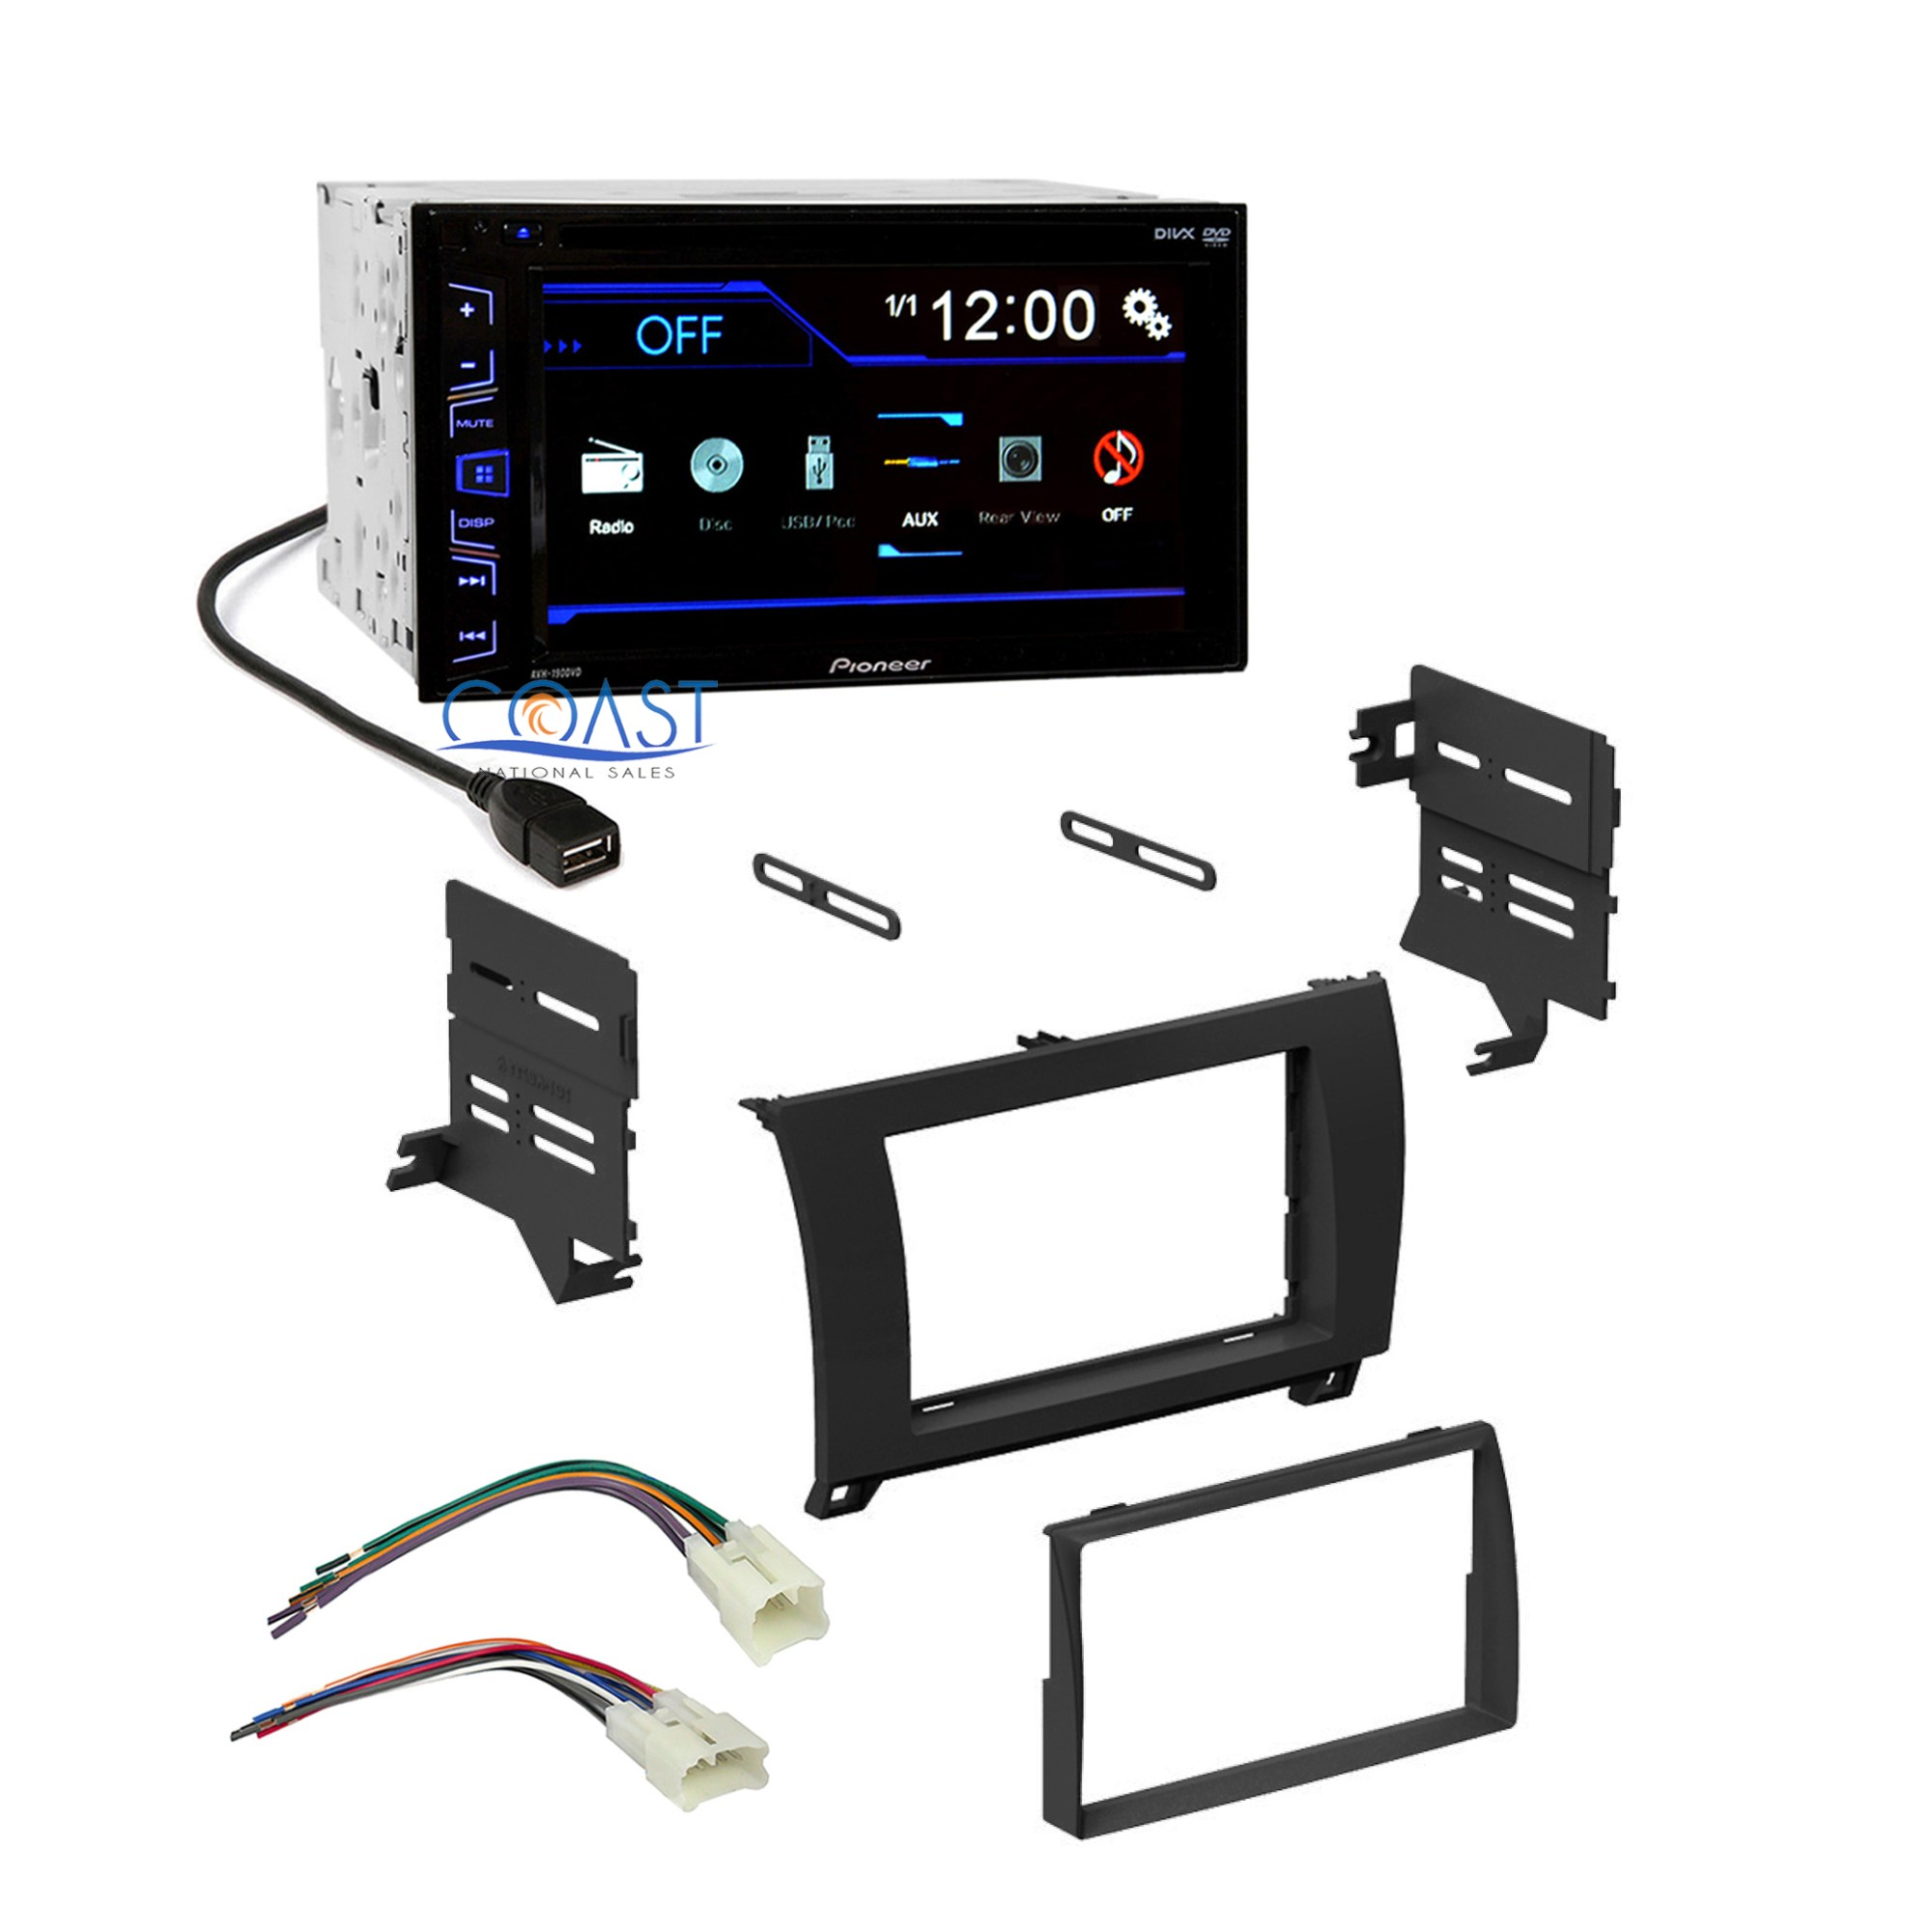 hight resolution of pioneer avic d3 wiring diagram further harness pioneer car car stereo wiring color codes car stereo